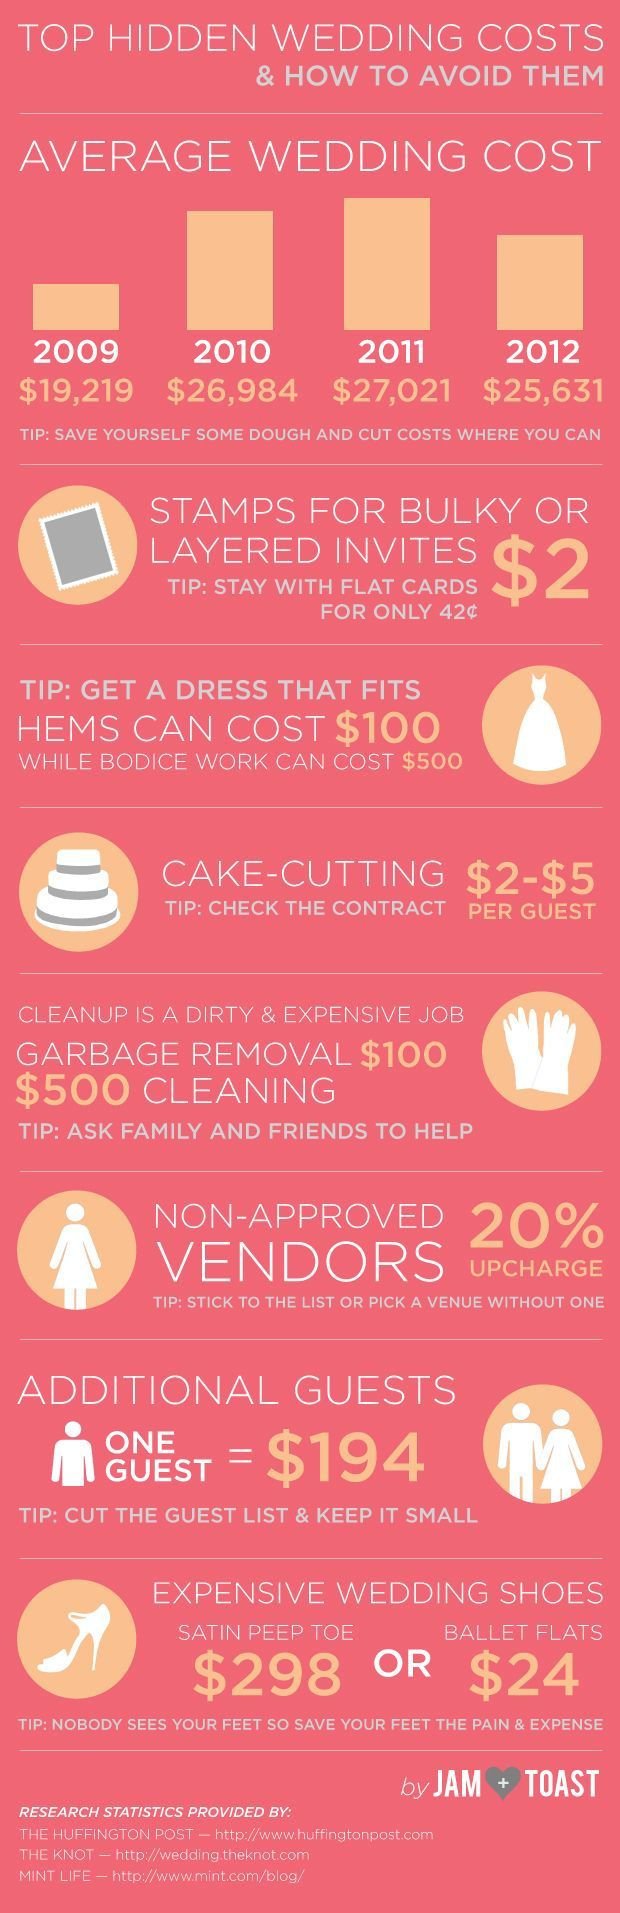 15 best ideas about wedding expenses on pinterest groom wedding wedding budget ideas sciox Images